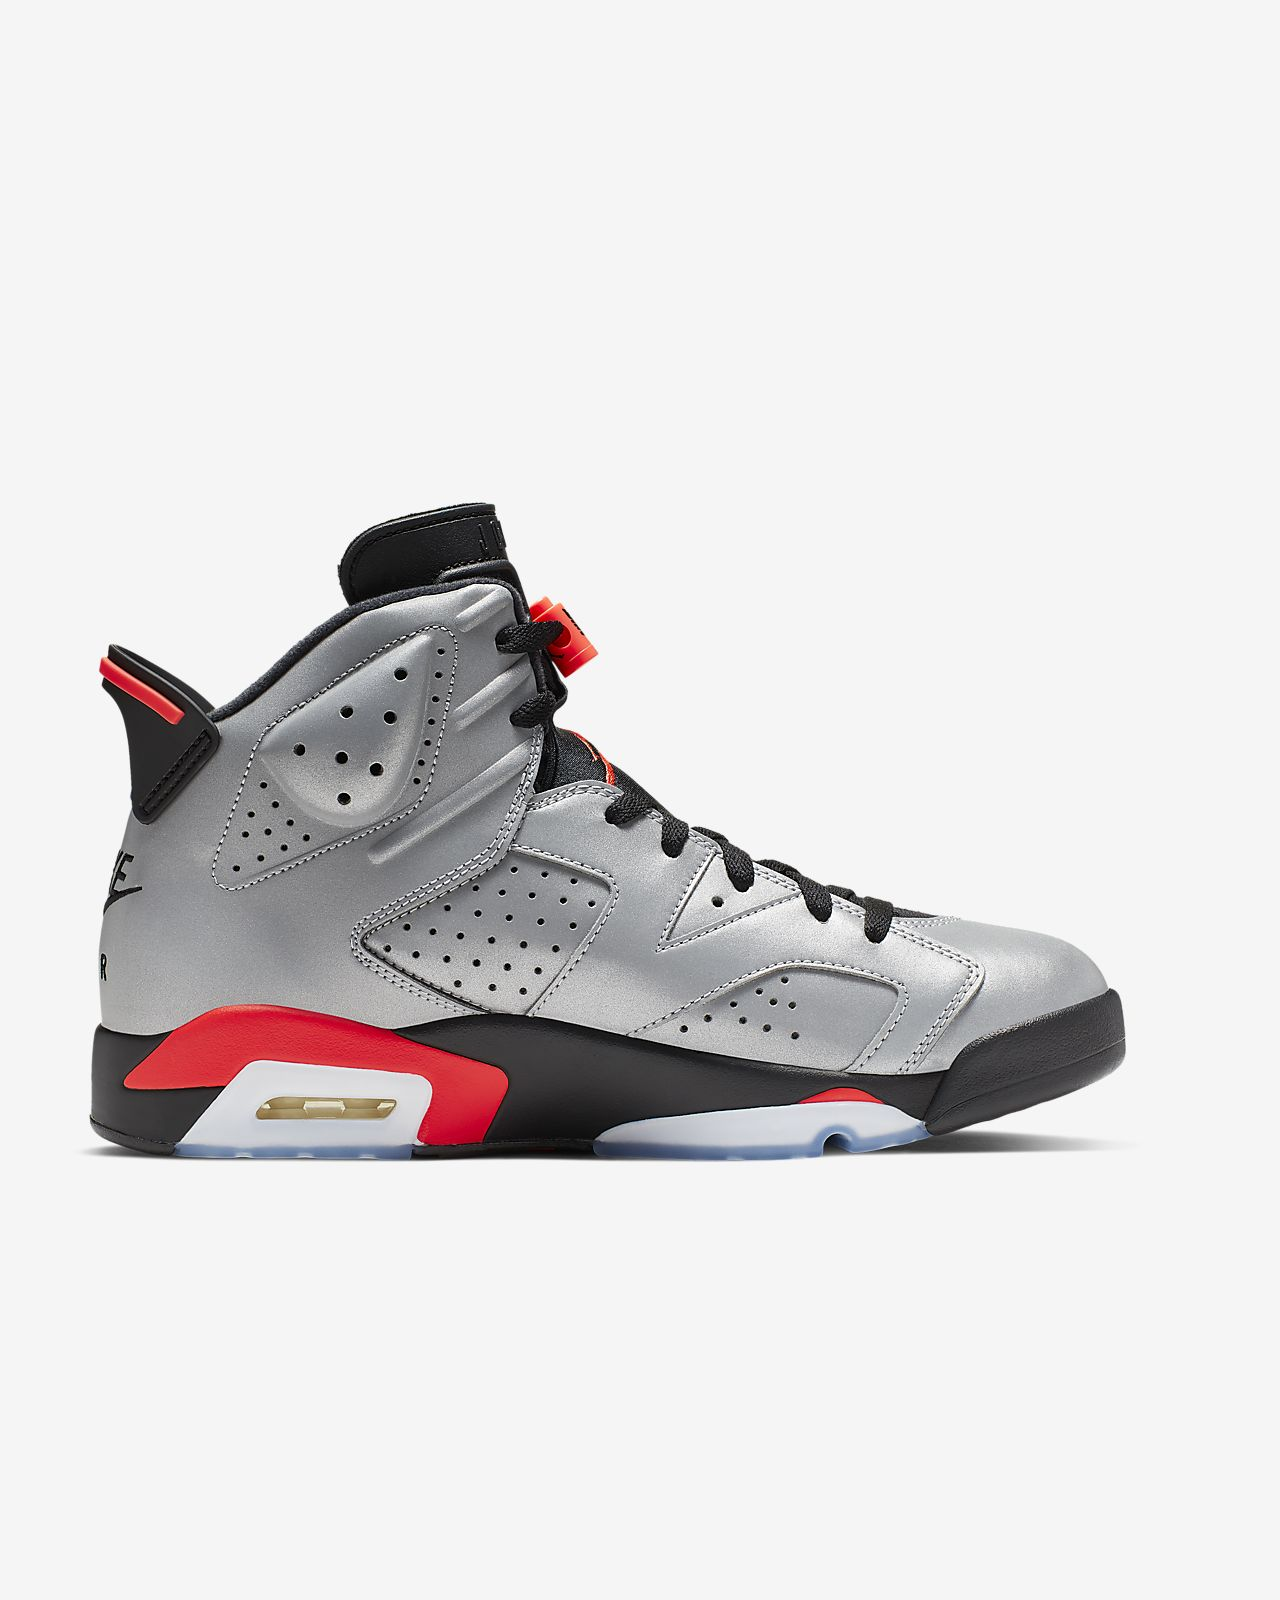 innovative design 966f8 7d53c Air Jordan 6 Retro SP Men's Shoe